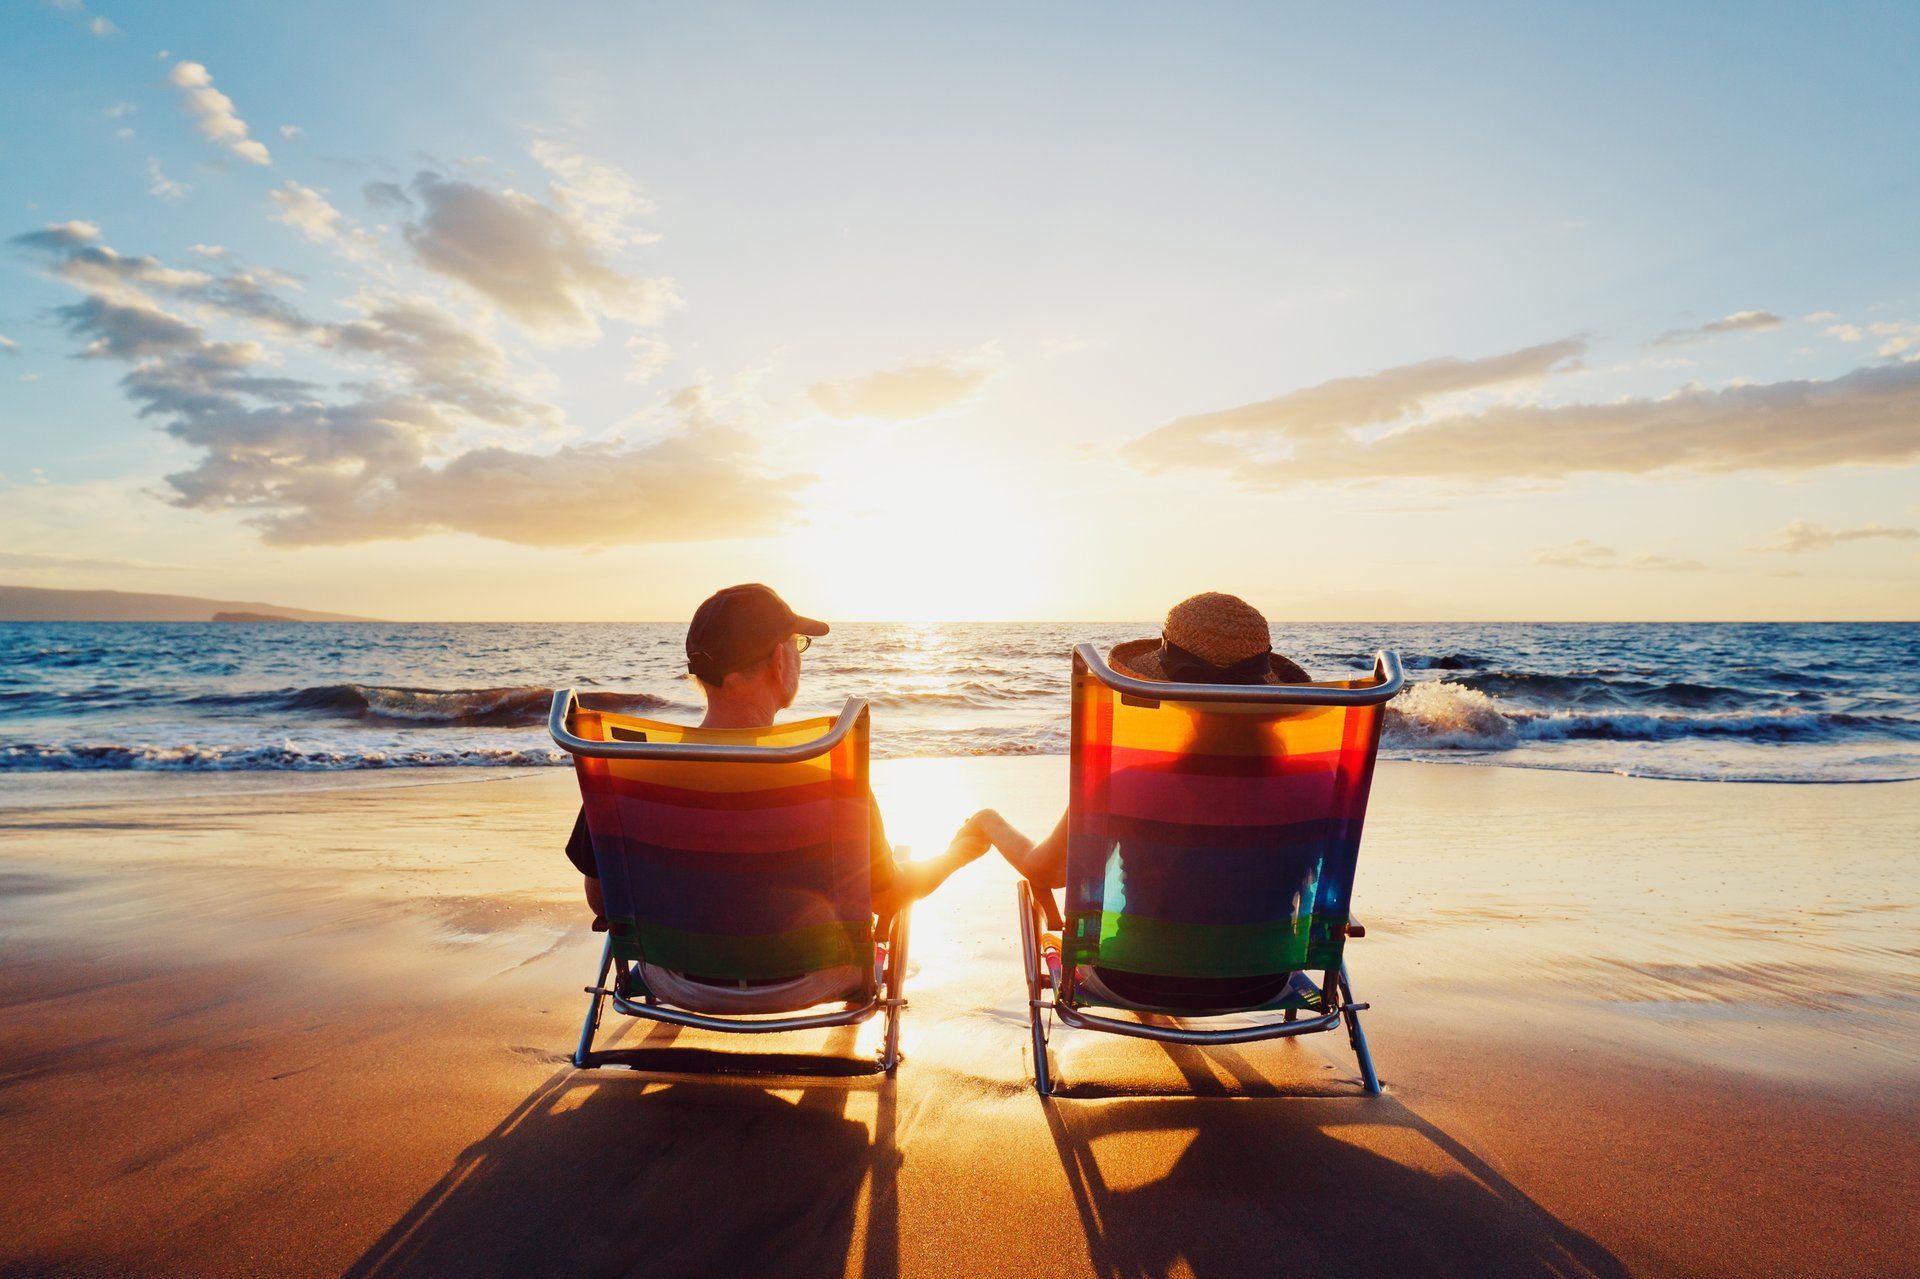 A couple watches the sunset at the beach